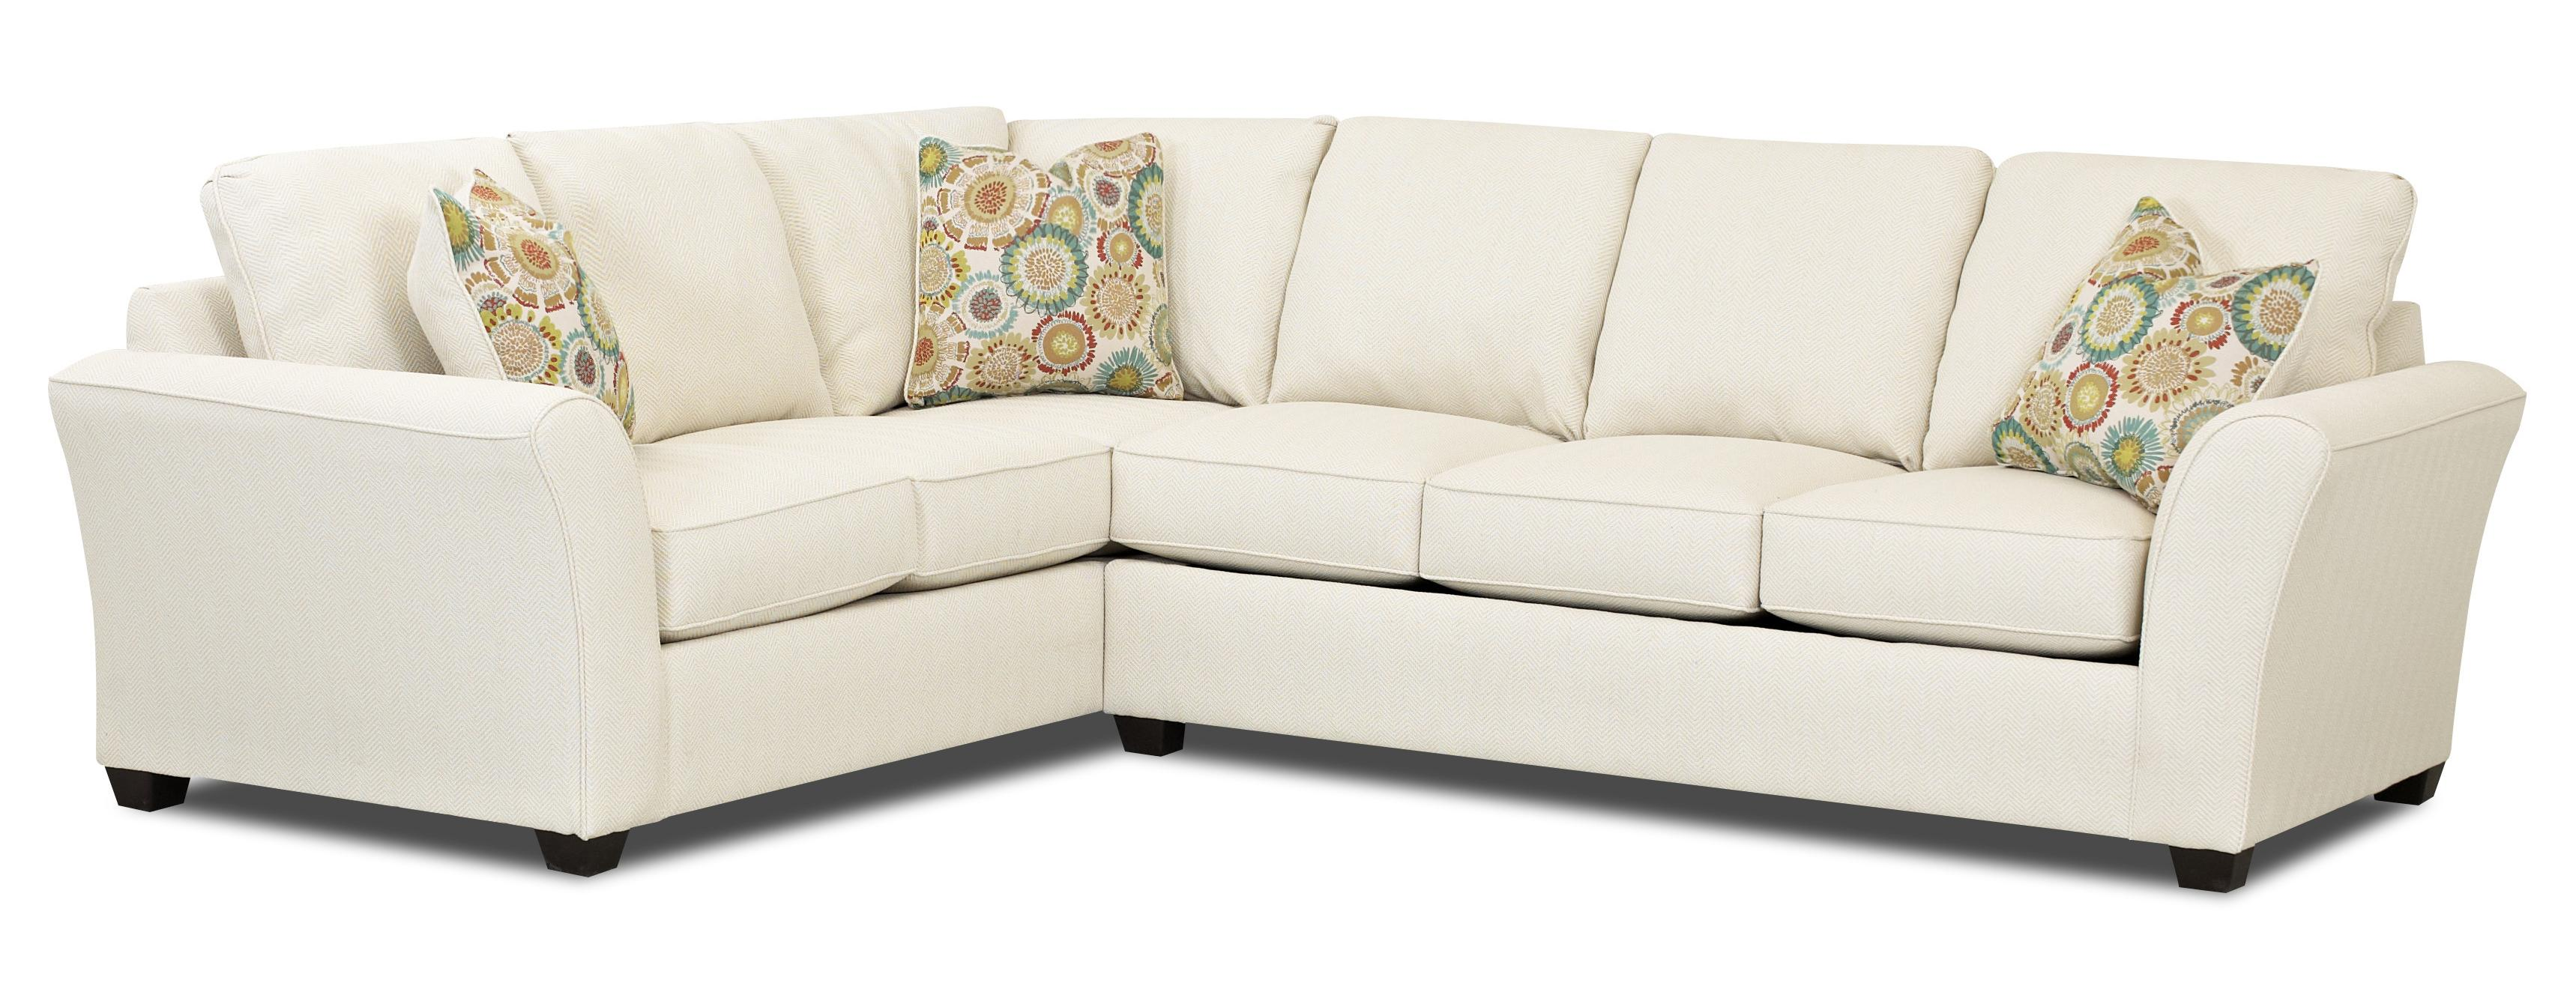 Transitional sectional sleeper sofa with dreamquest for Sleeper sectional